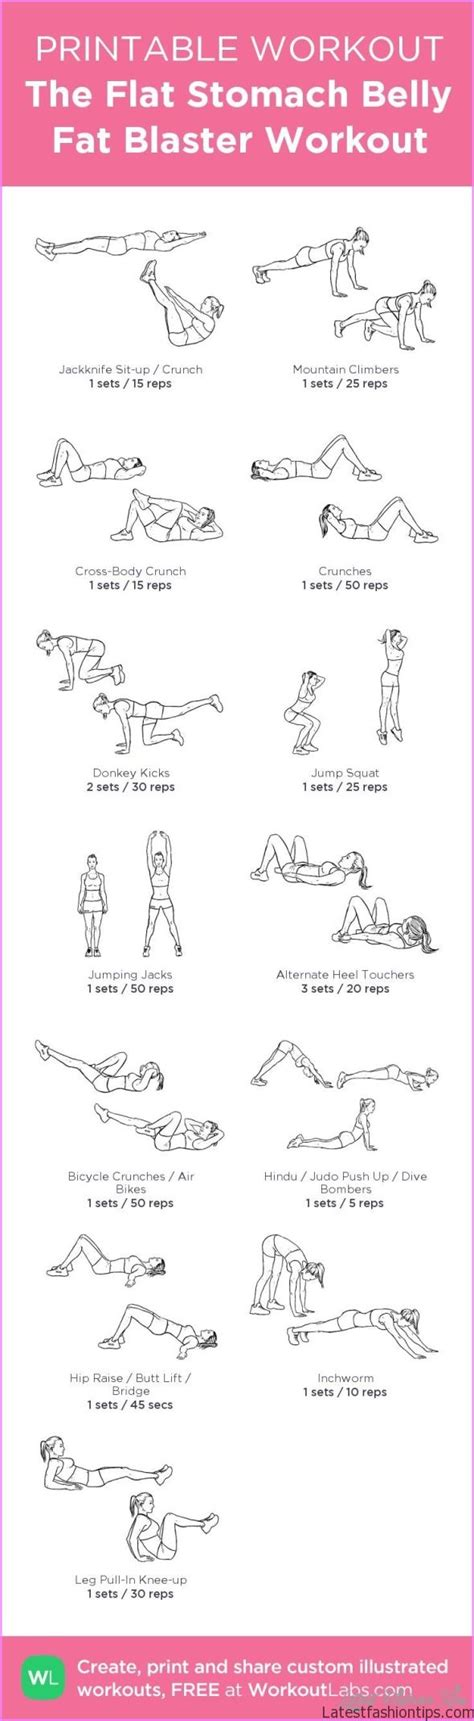 stomach exercises for weight loss latestfashiontips